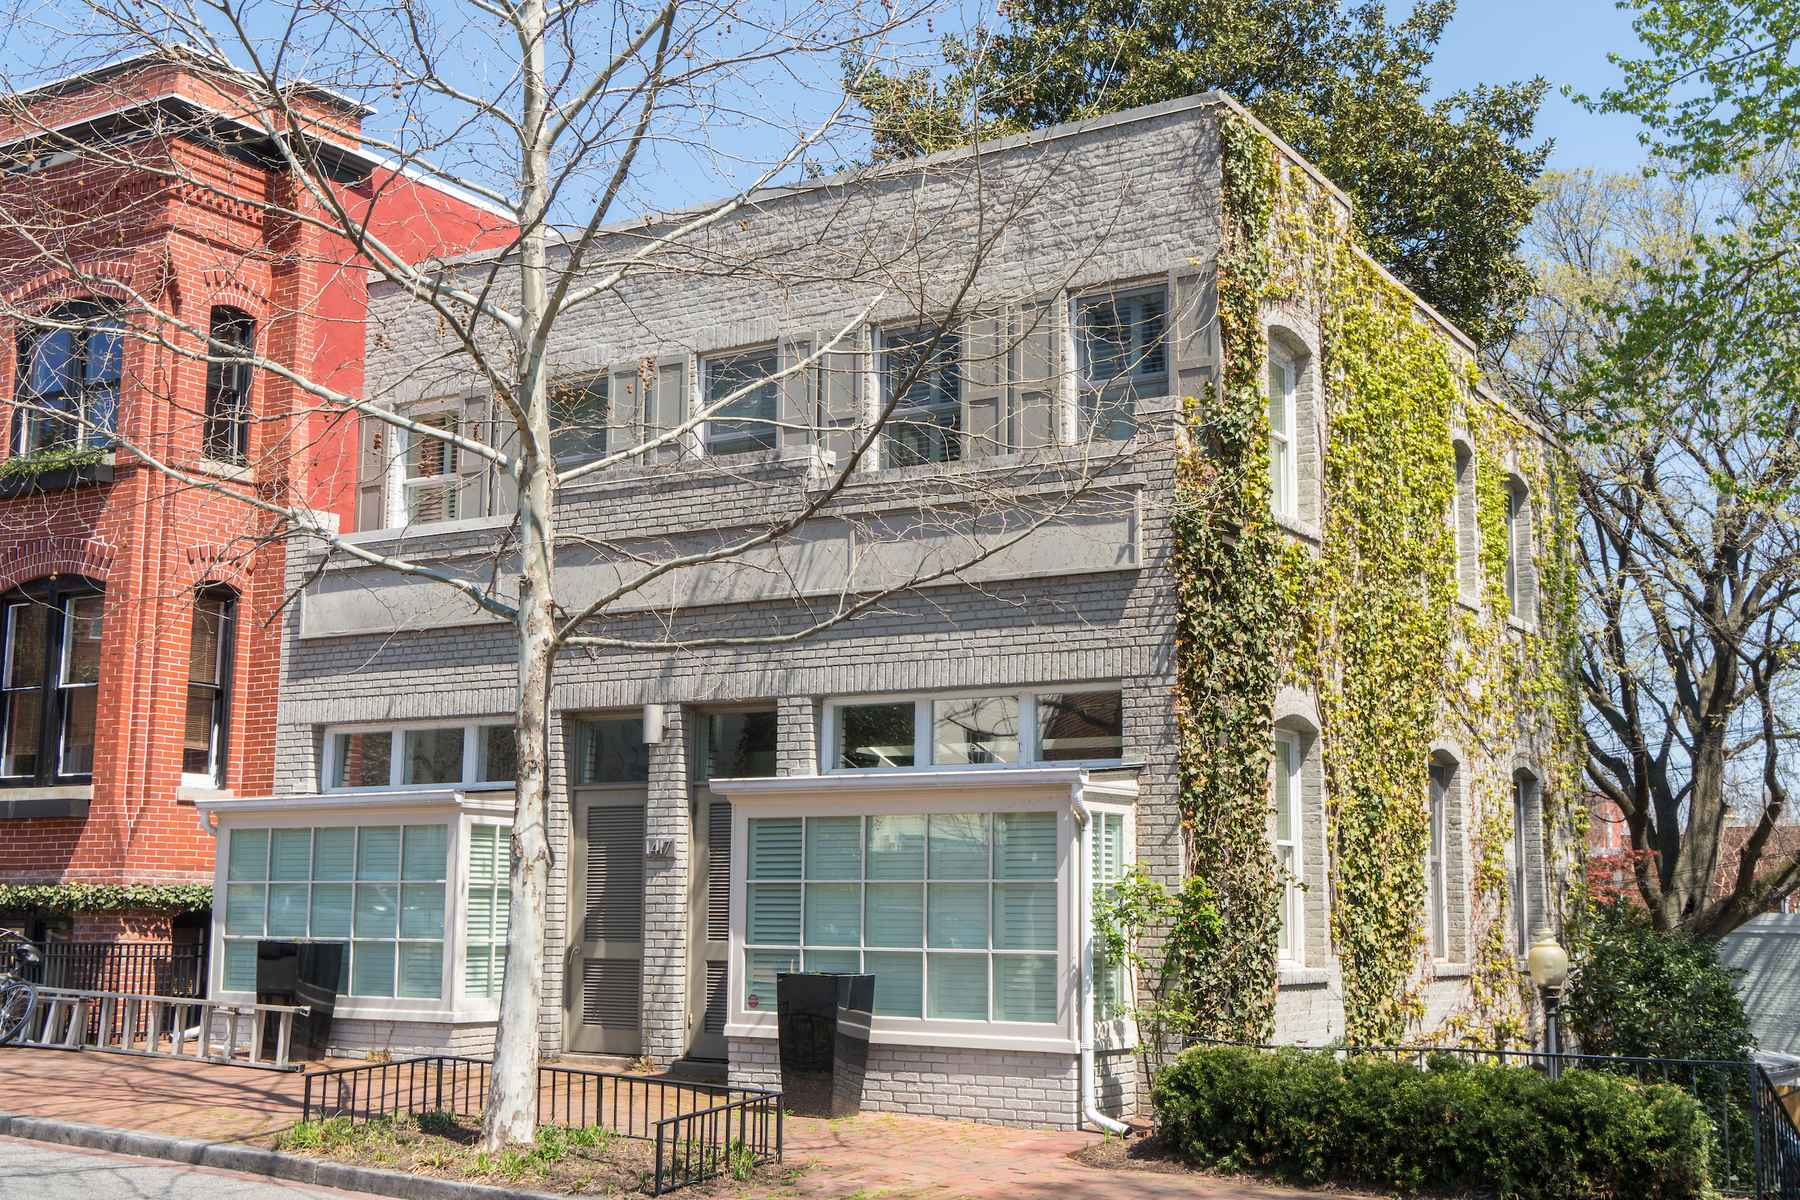 1417 28th Street, NW